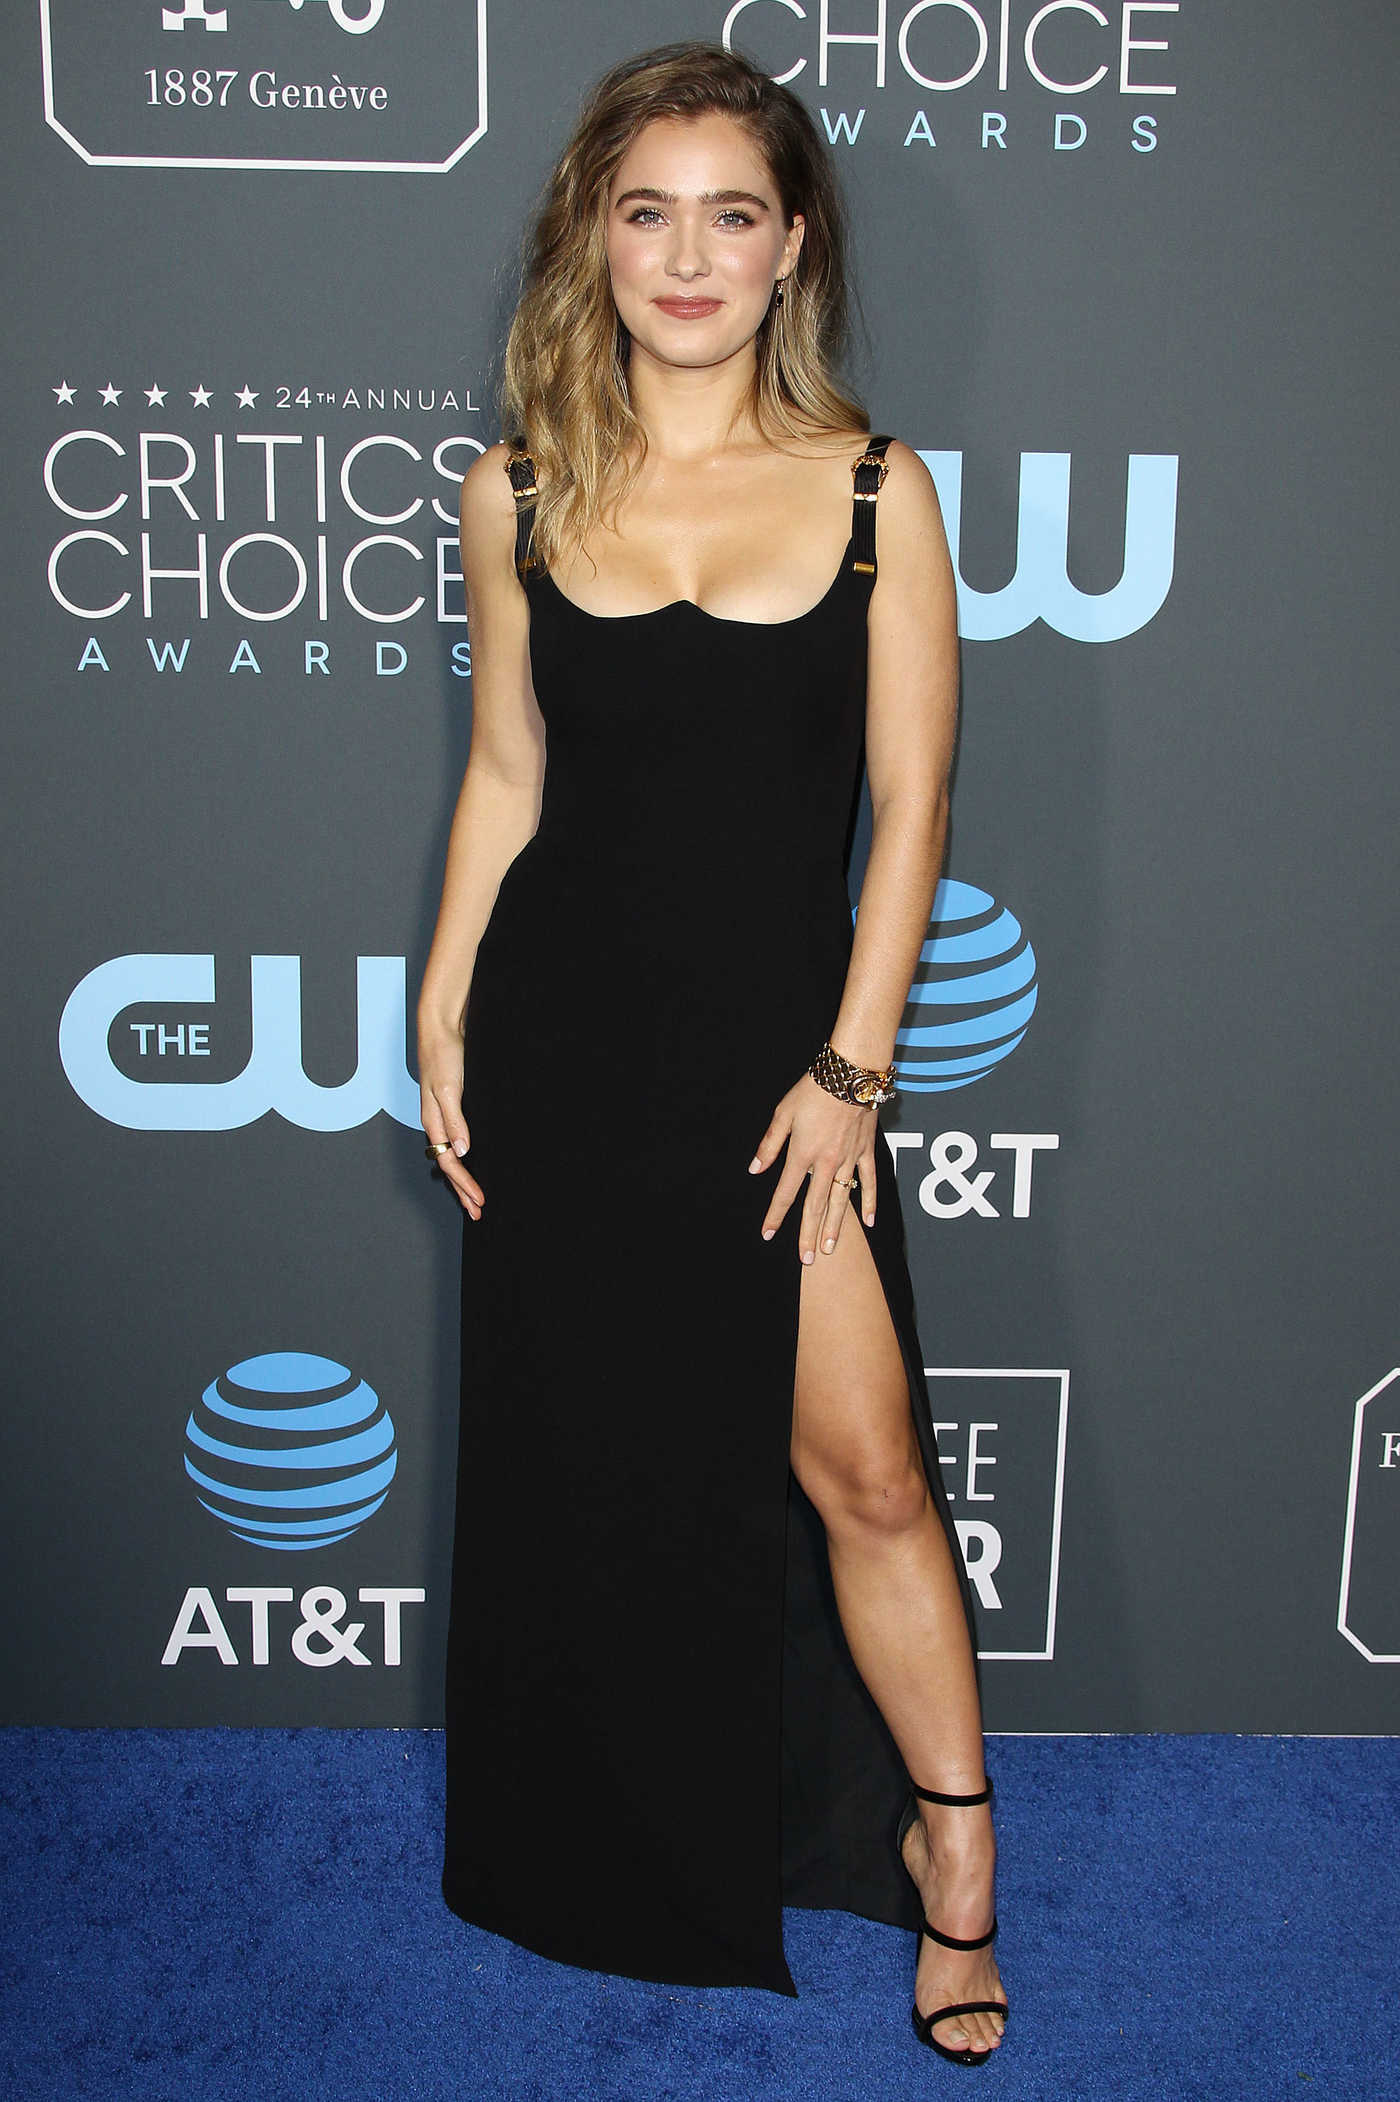 Haley Lu Richardson Attends the 24th Annual Critics' Choice Awards at Barker Hangar in Santa Monica 01/13/2019